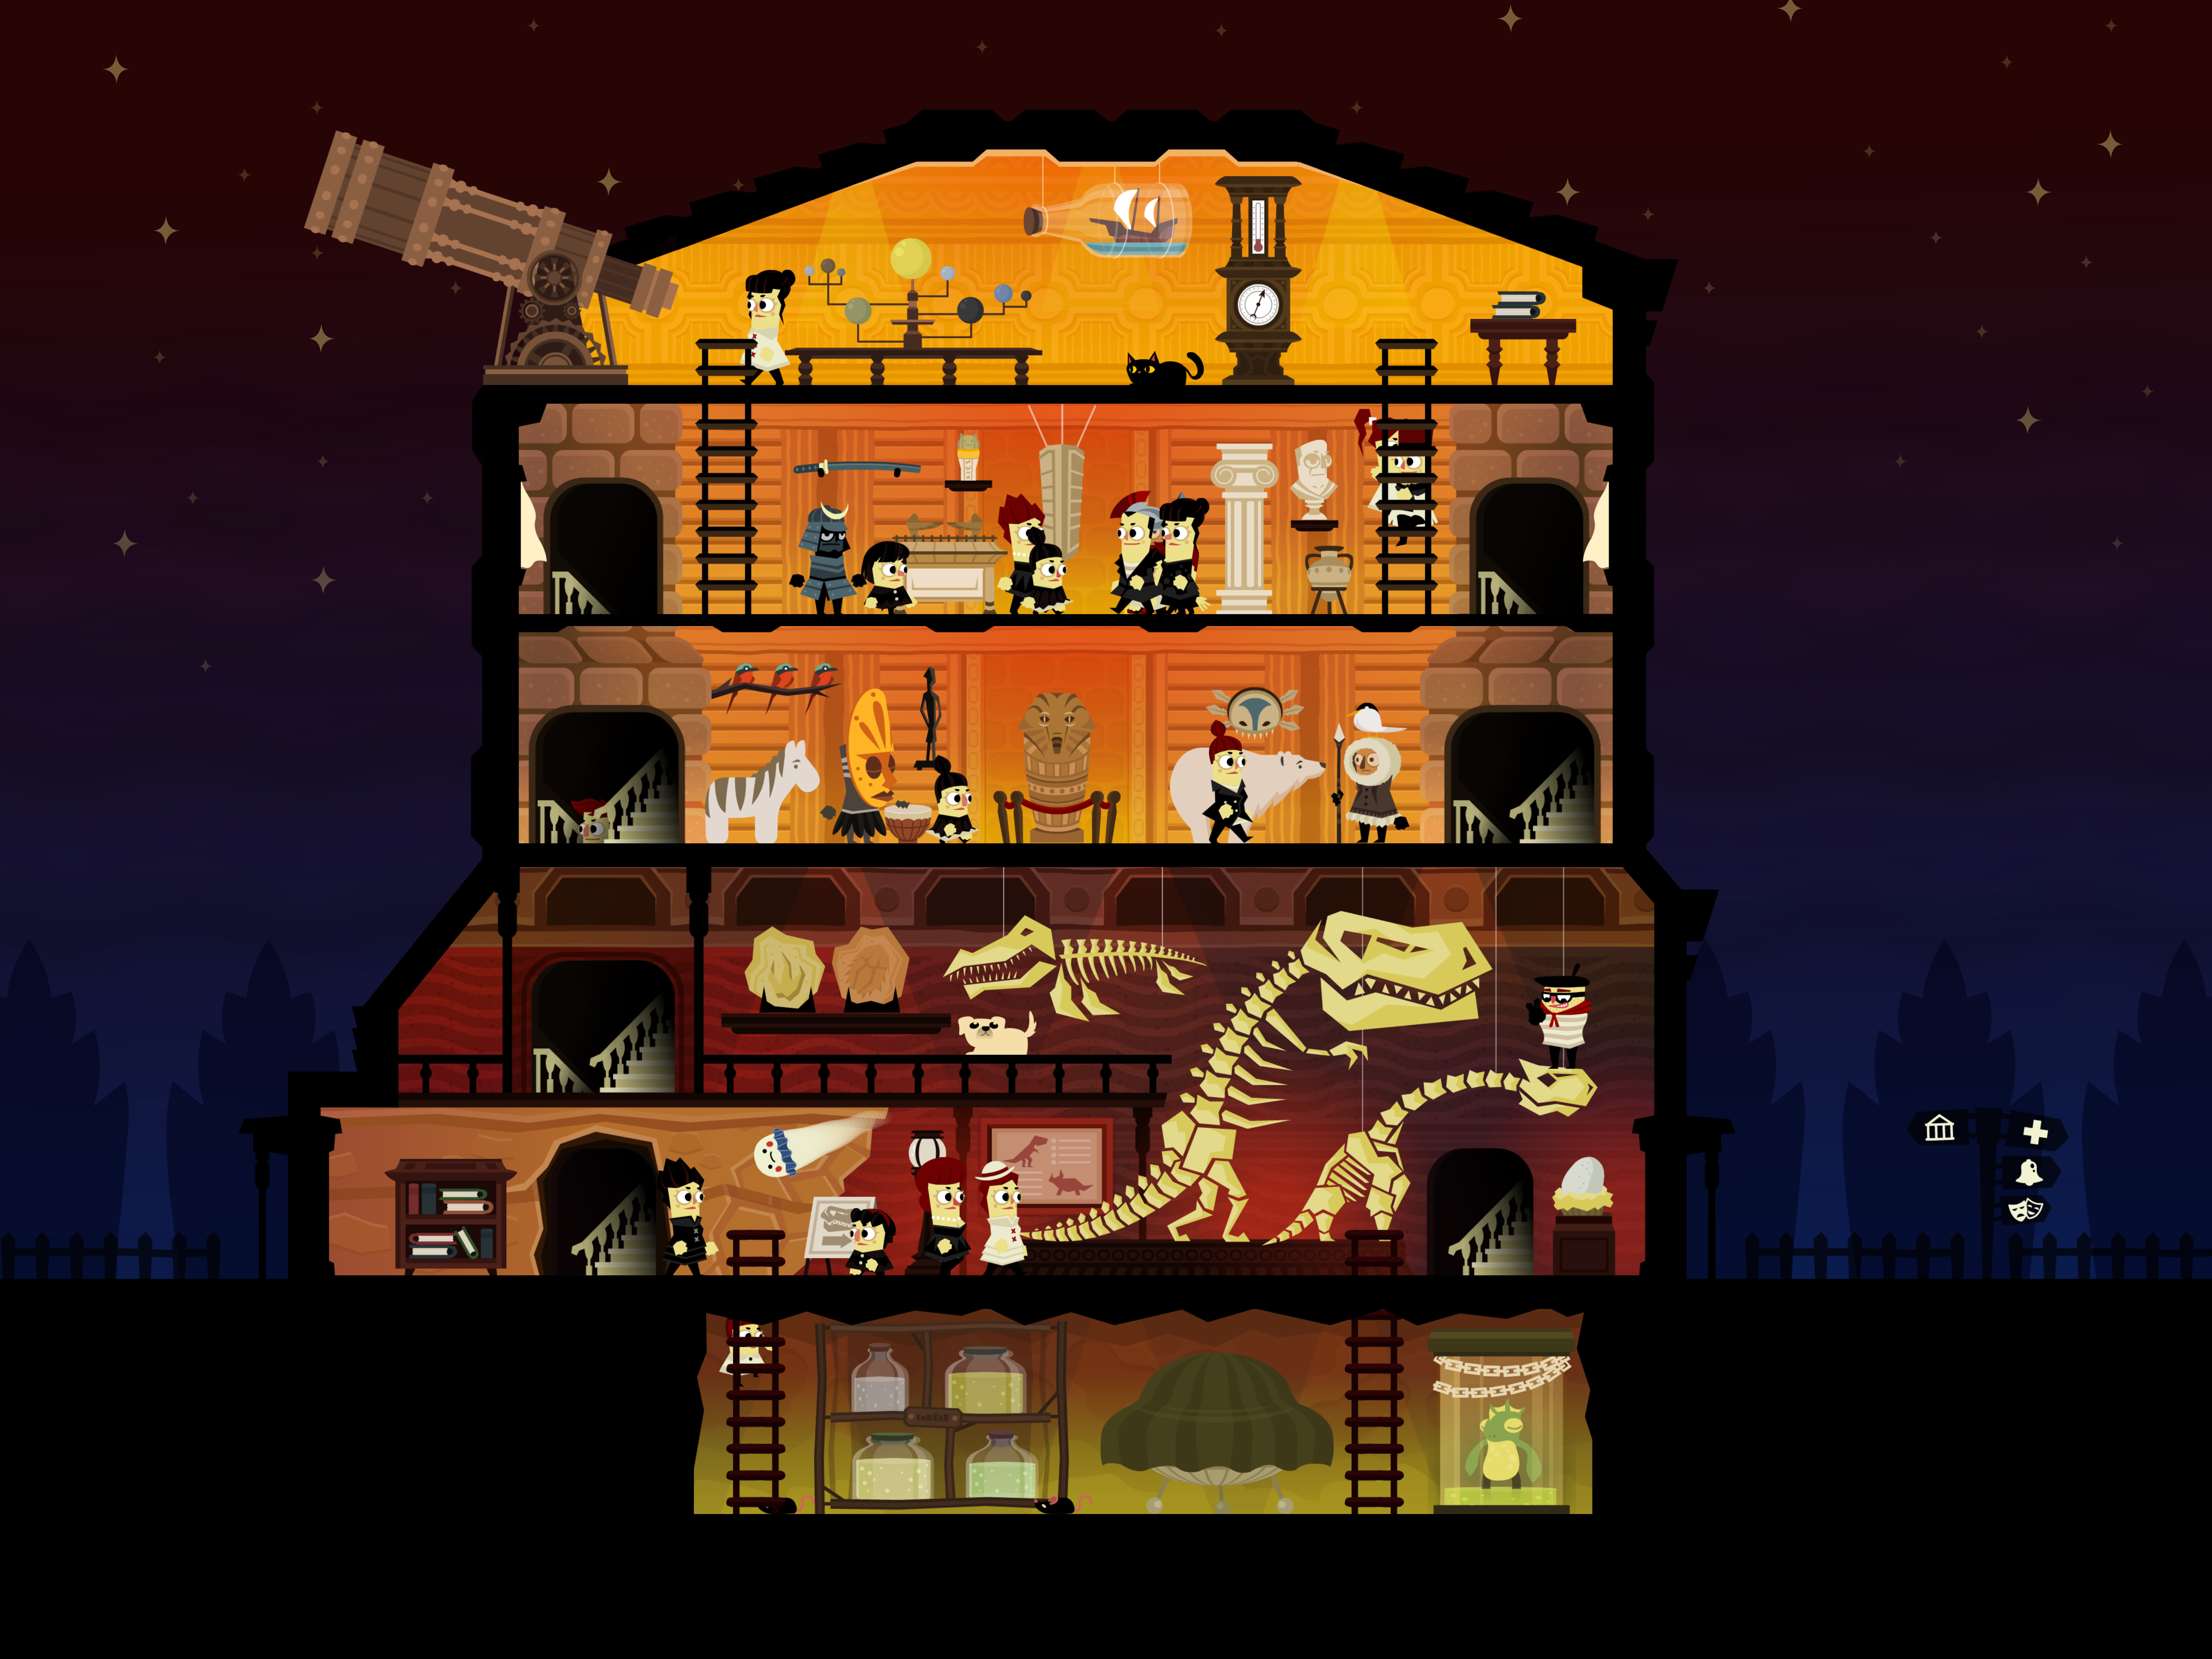 7200x5400 > Haunt The House: Terrortown Wallpapers